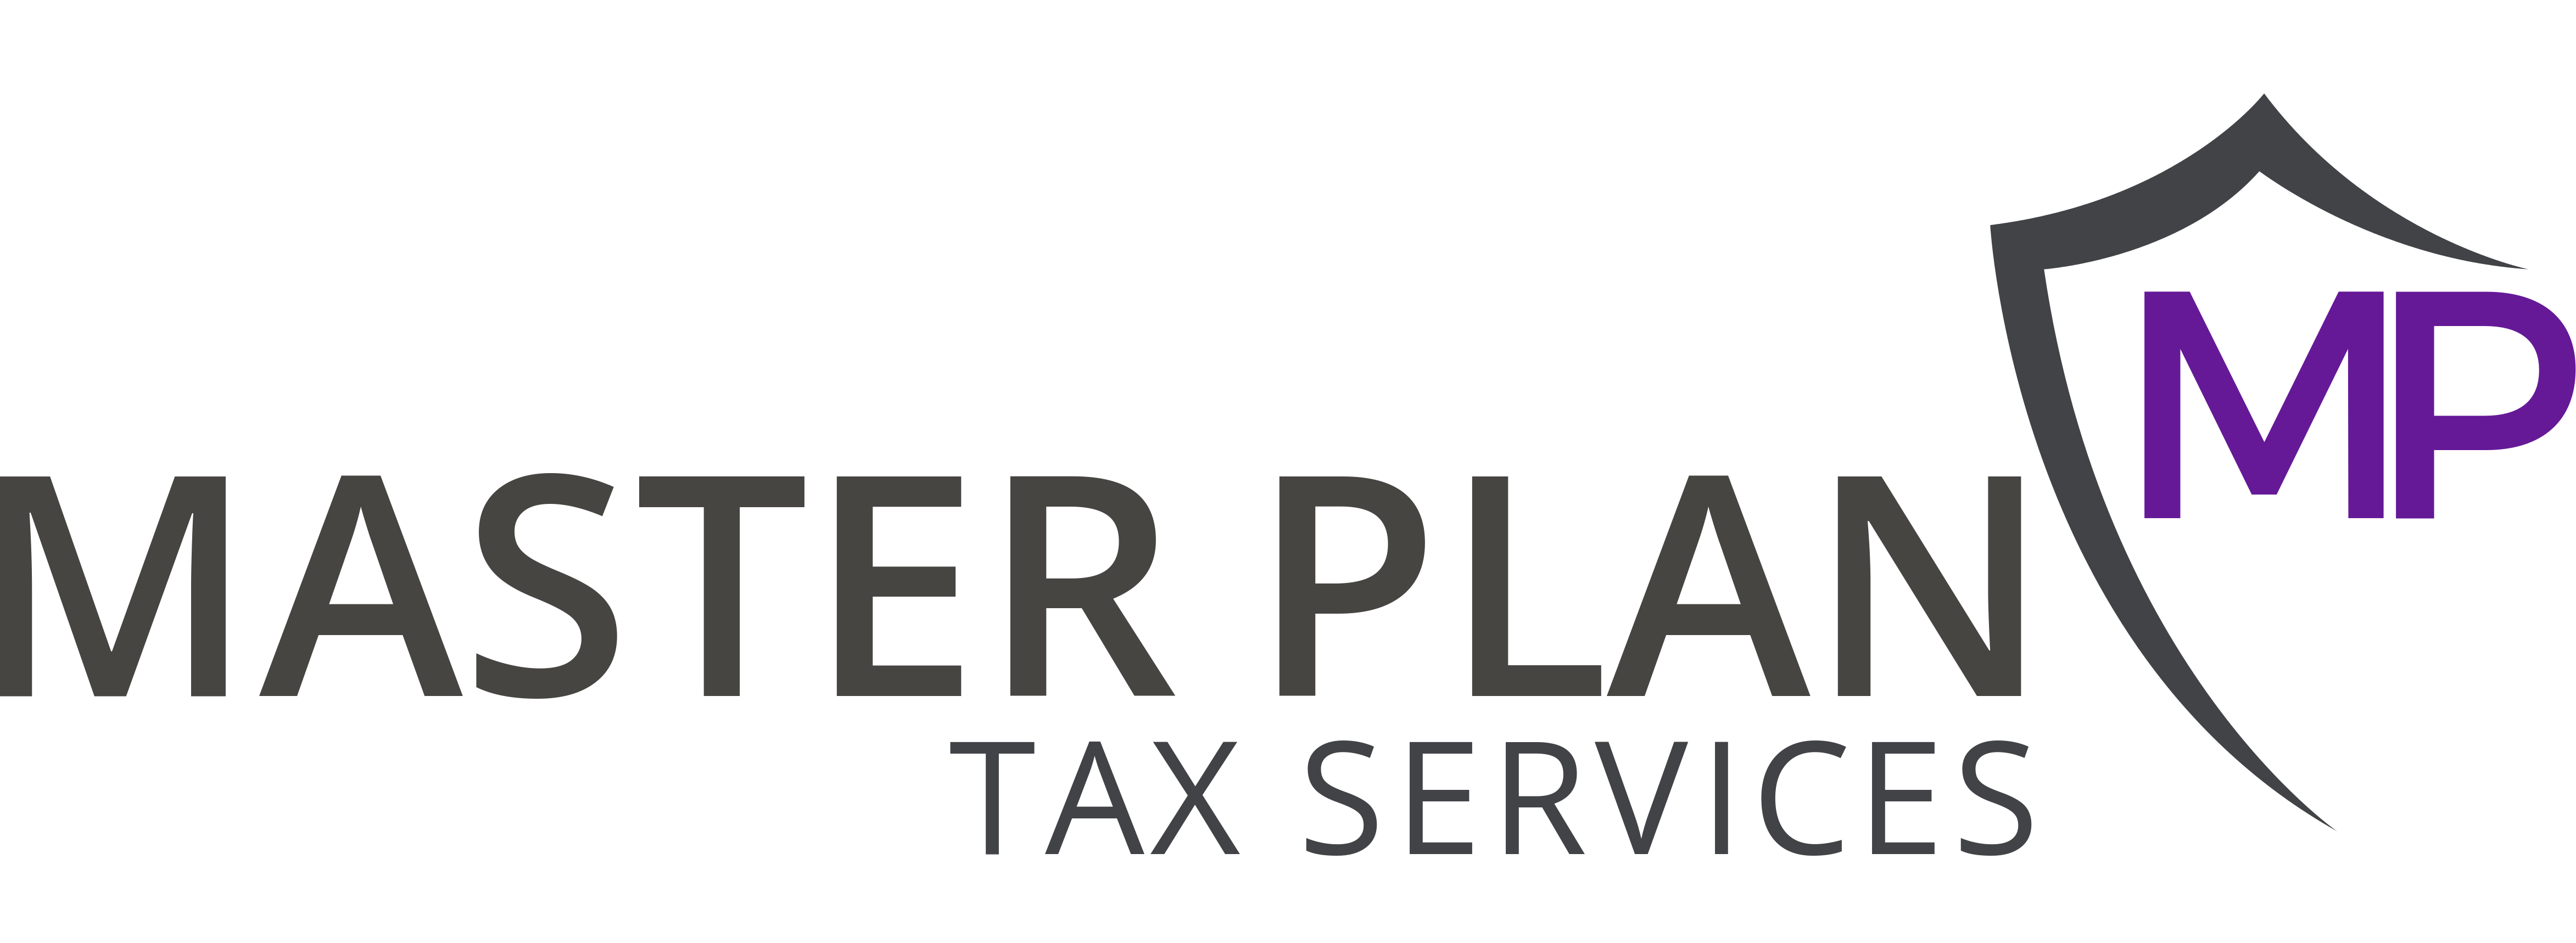 Master Plan Tax Services